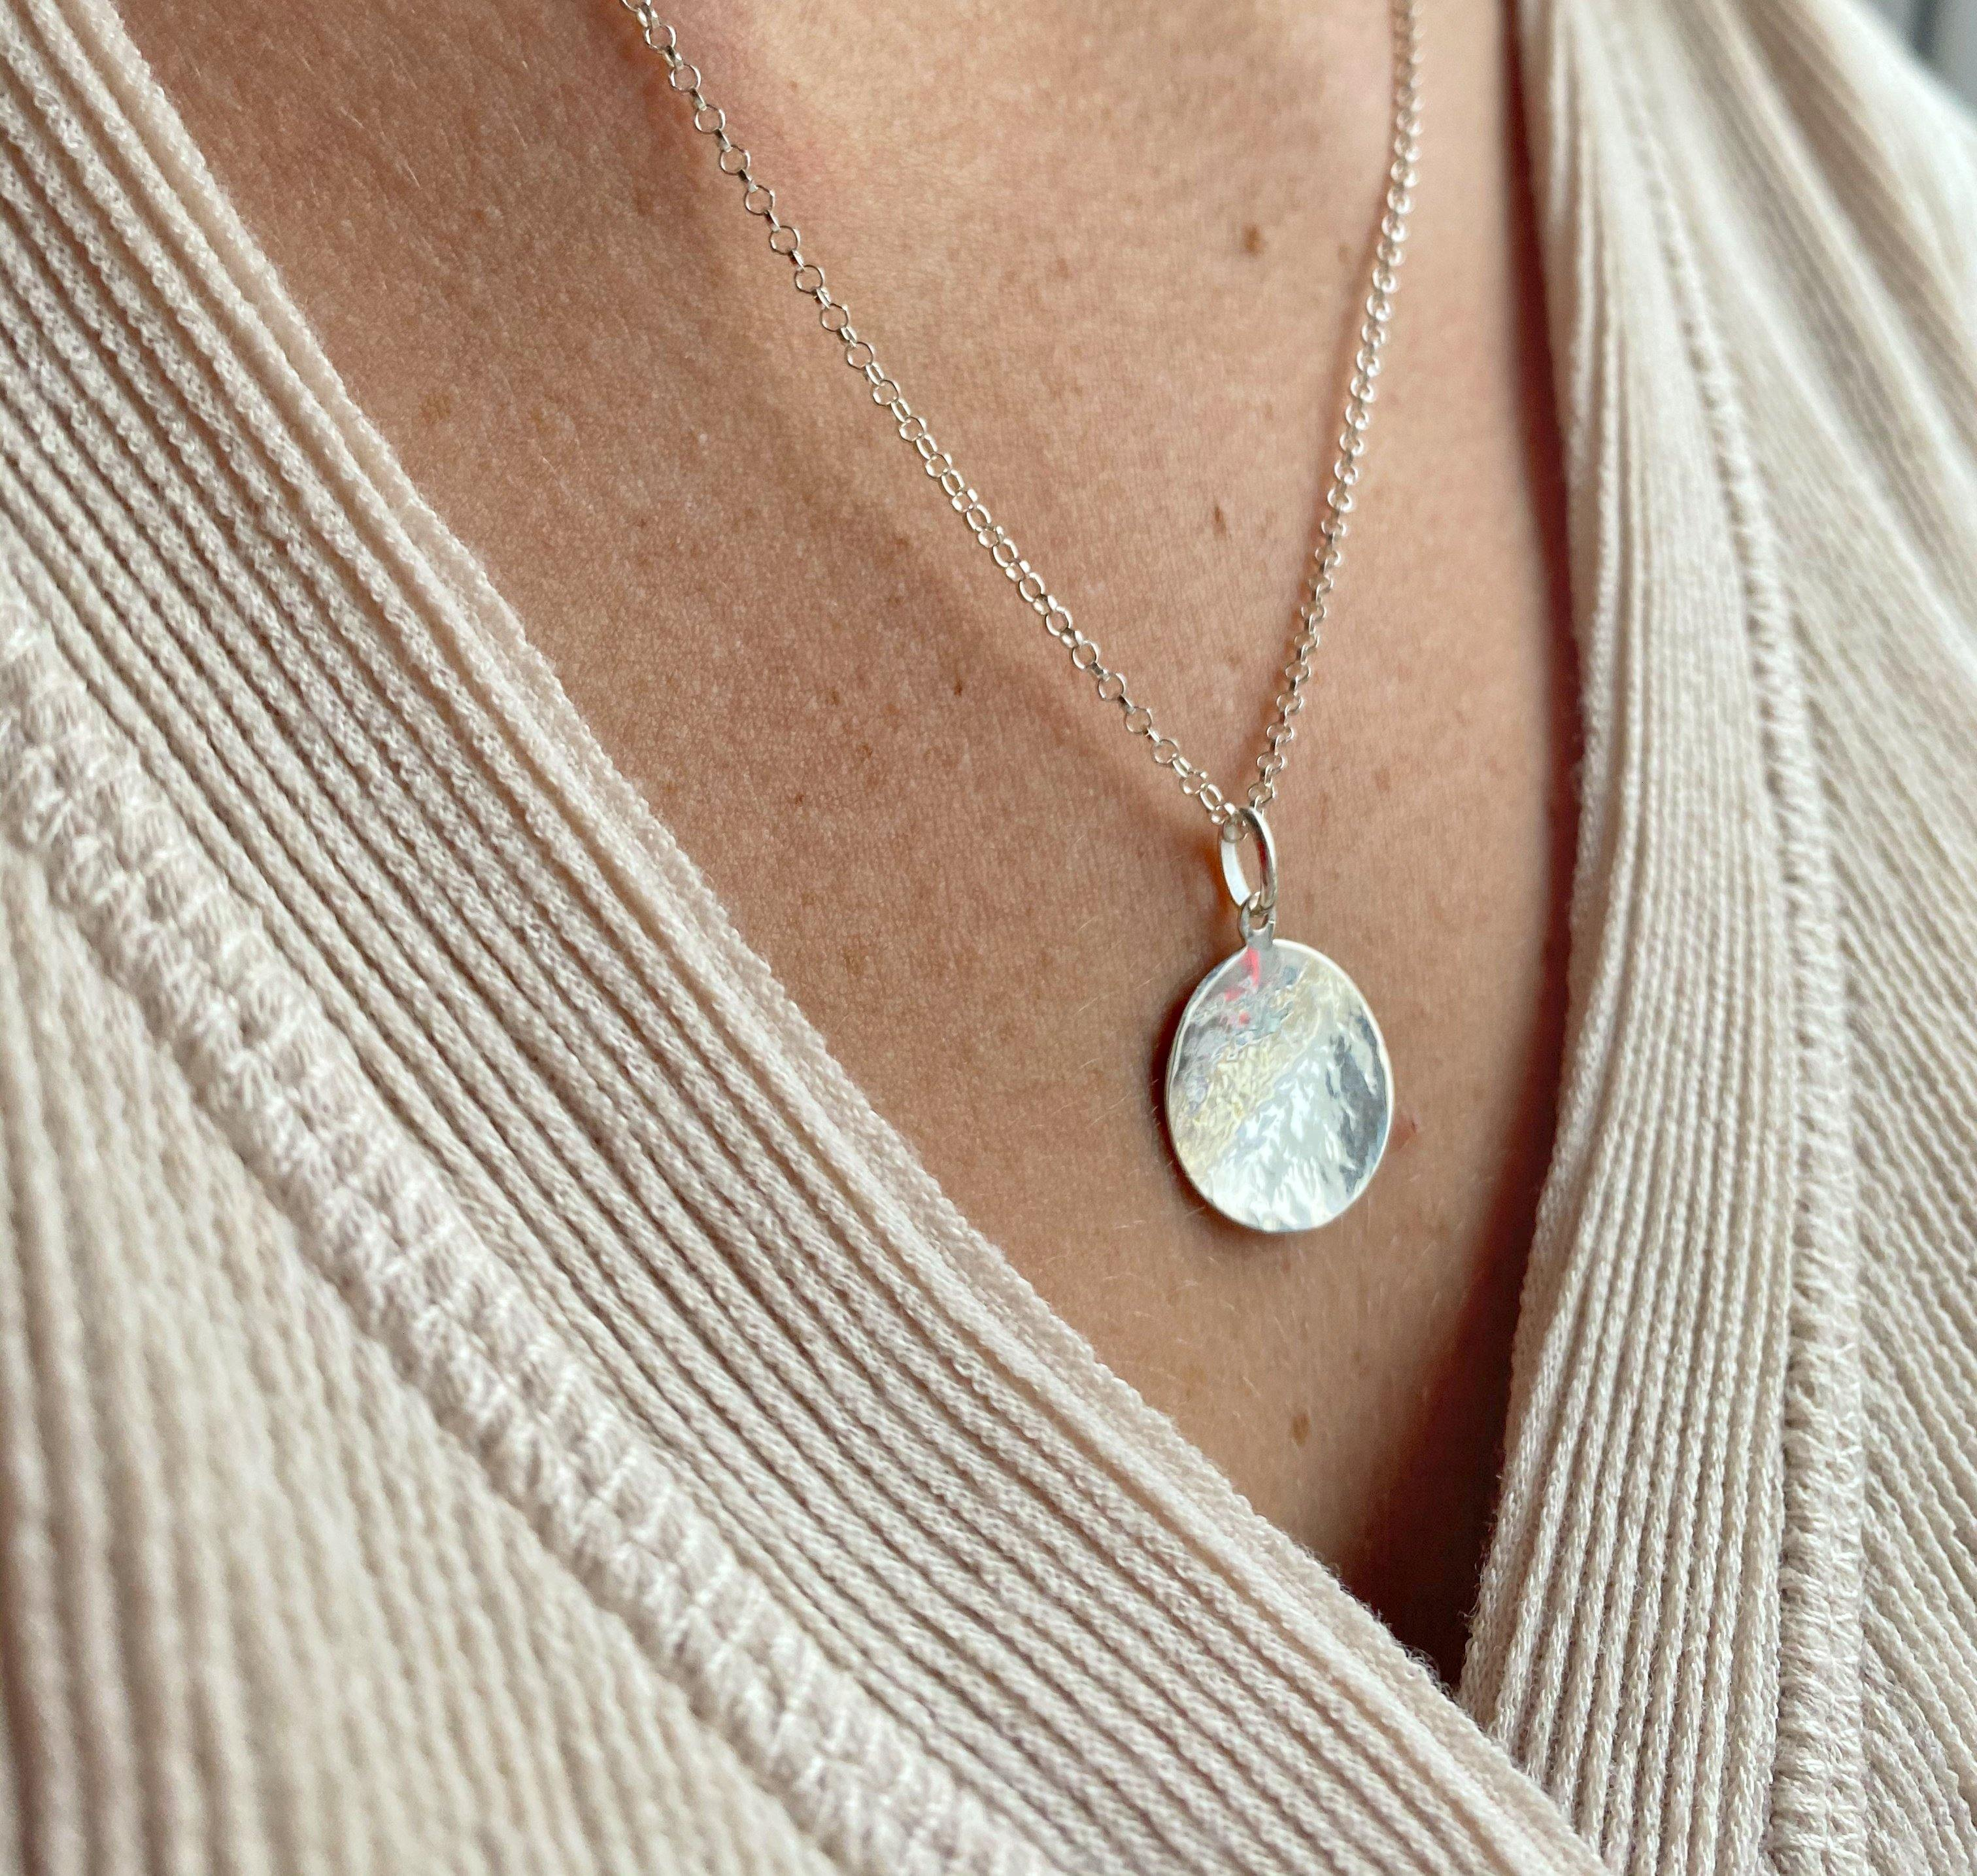 Sterling Silver Hammered Disc Necklace - The Jewellery Hut UK